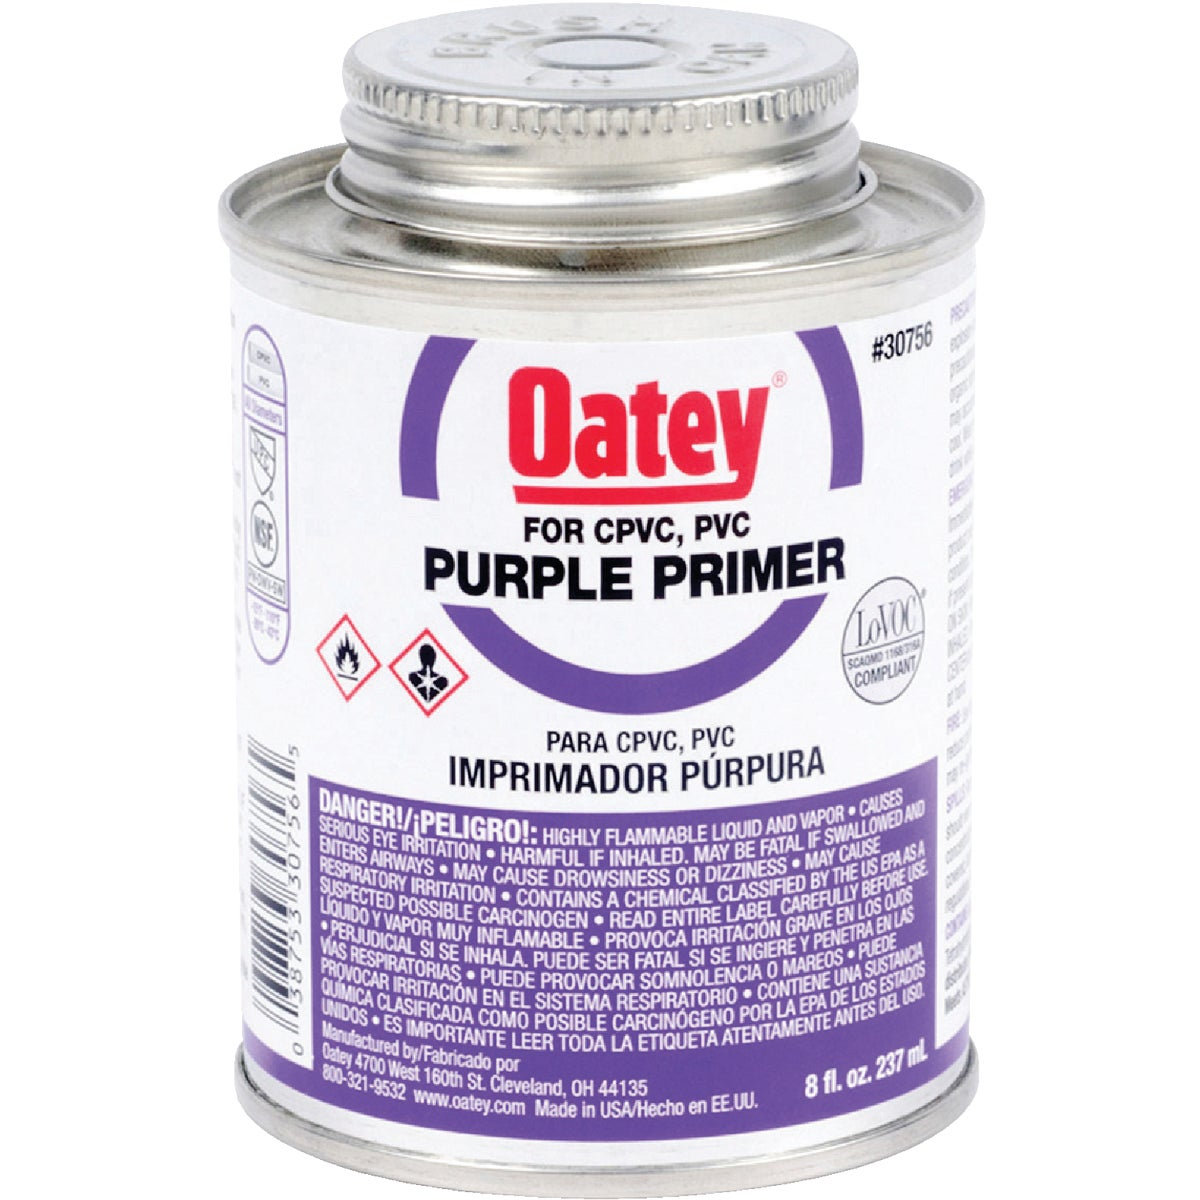 1/2PINT PURPLE PRIMER - 30756 by Oatey Scs